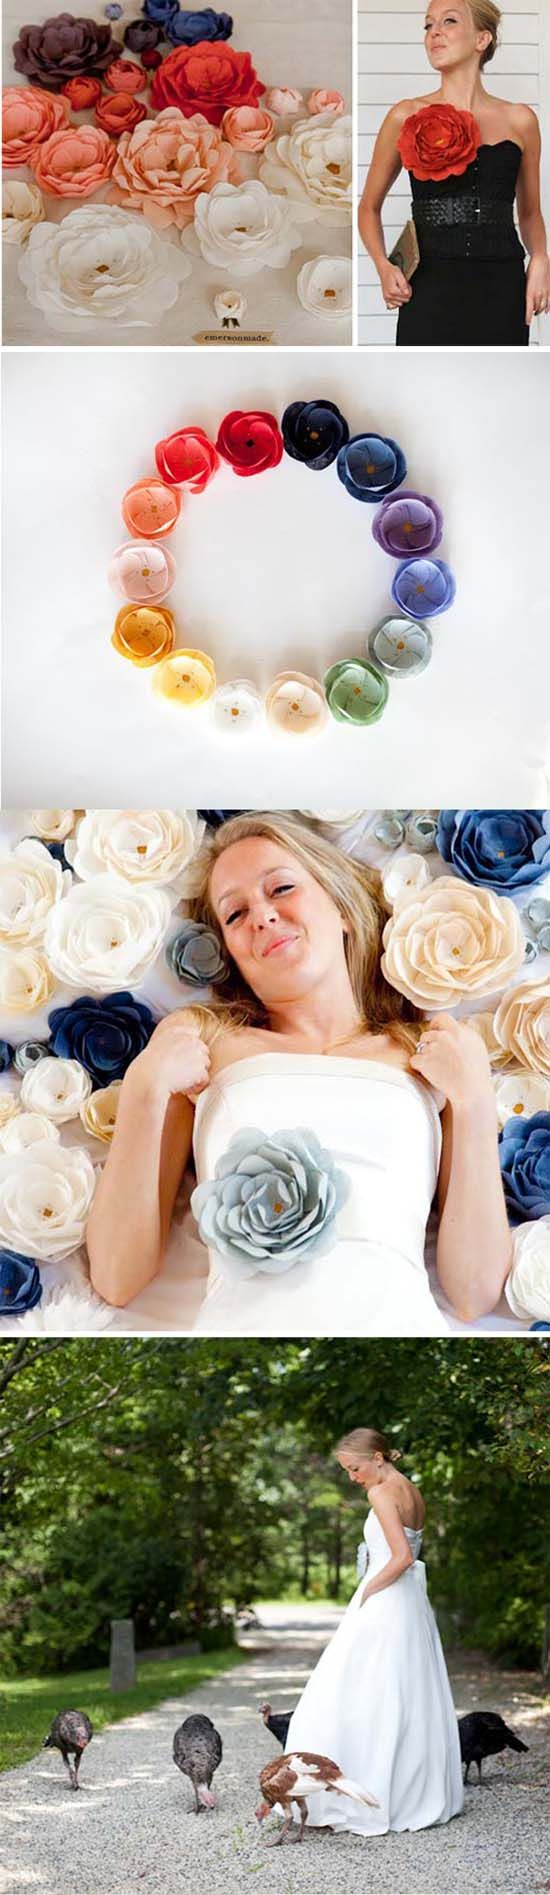 love these emerson made flowers: Paper Flowers Crafts, Diy Flowers, Flowers Mania, Handmade Flowers, Fabrics Flowers